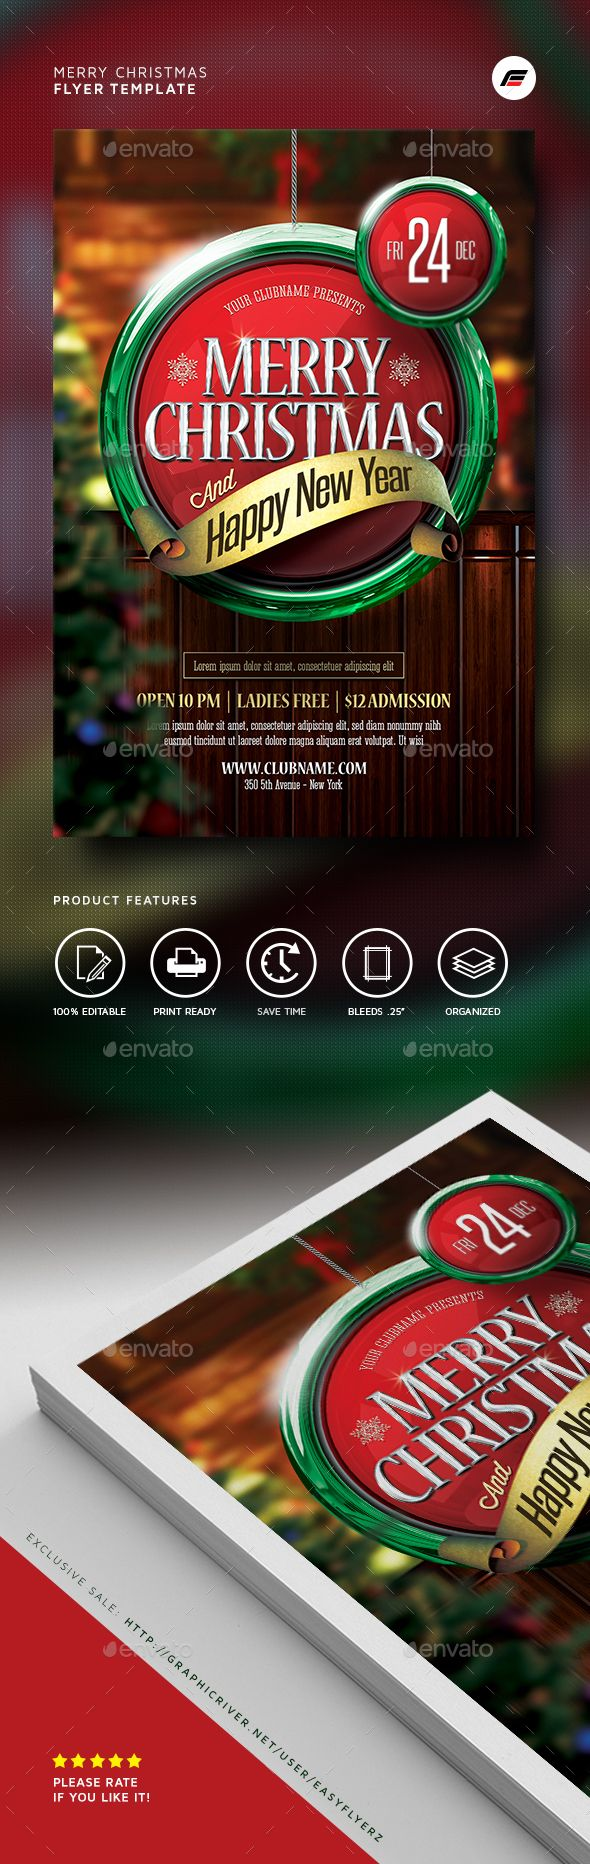 Merry Christmas Flyer Template PSD #design #xmas Download: http://graphicriver.net/item/merry-christmas-flyer-template-/13889988?ref=ksioks